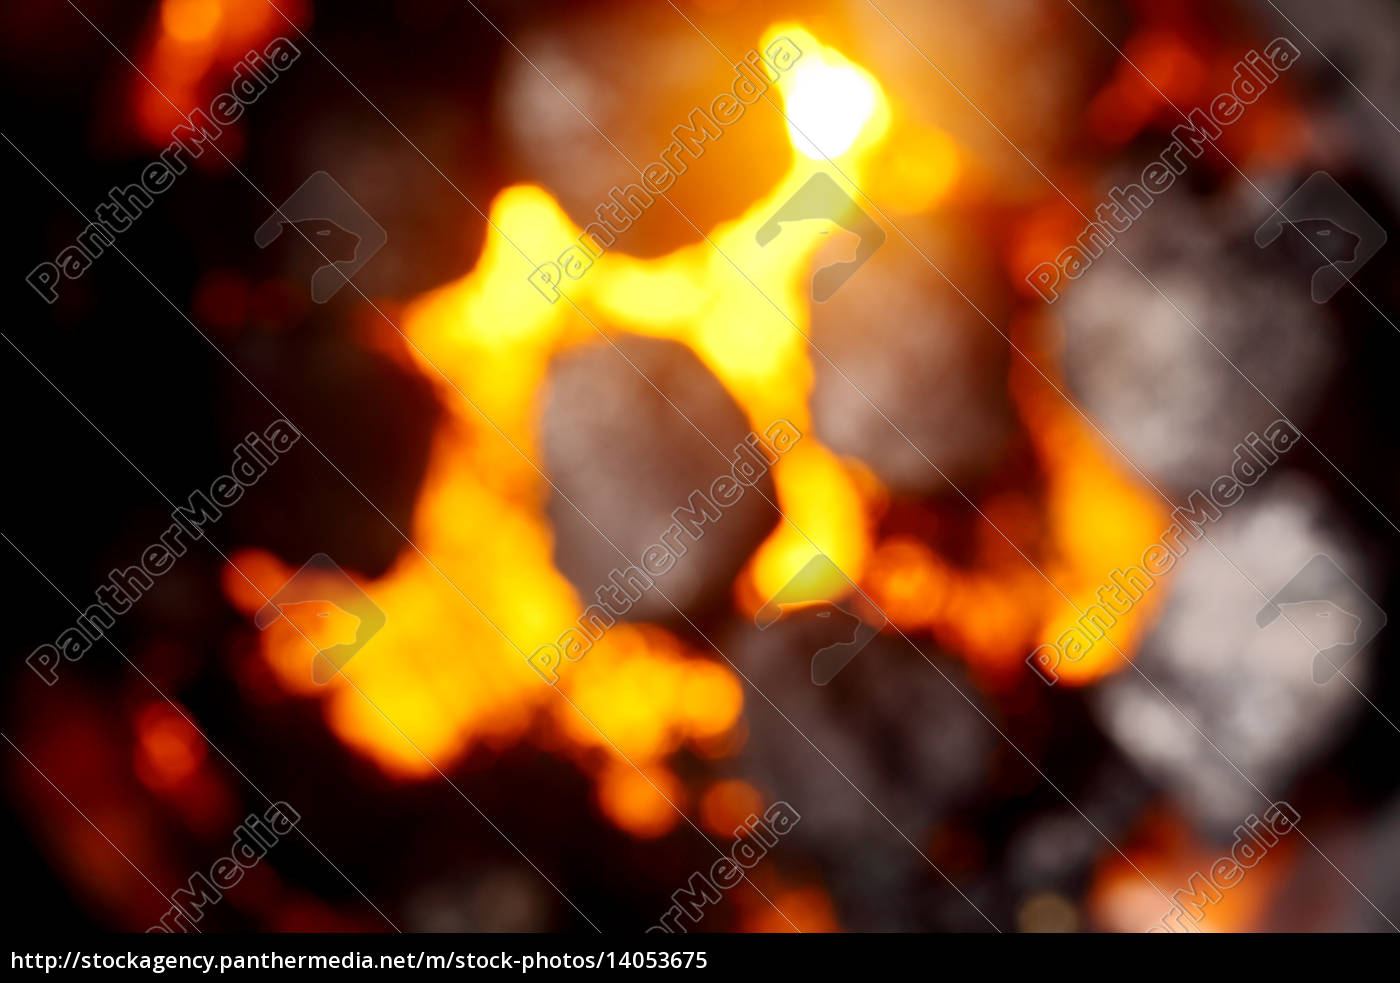 blurred, background, of, hot, glowing, coals - 14053675